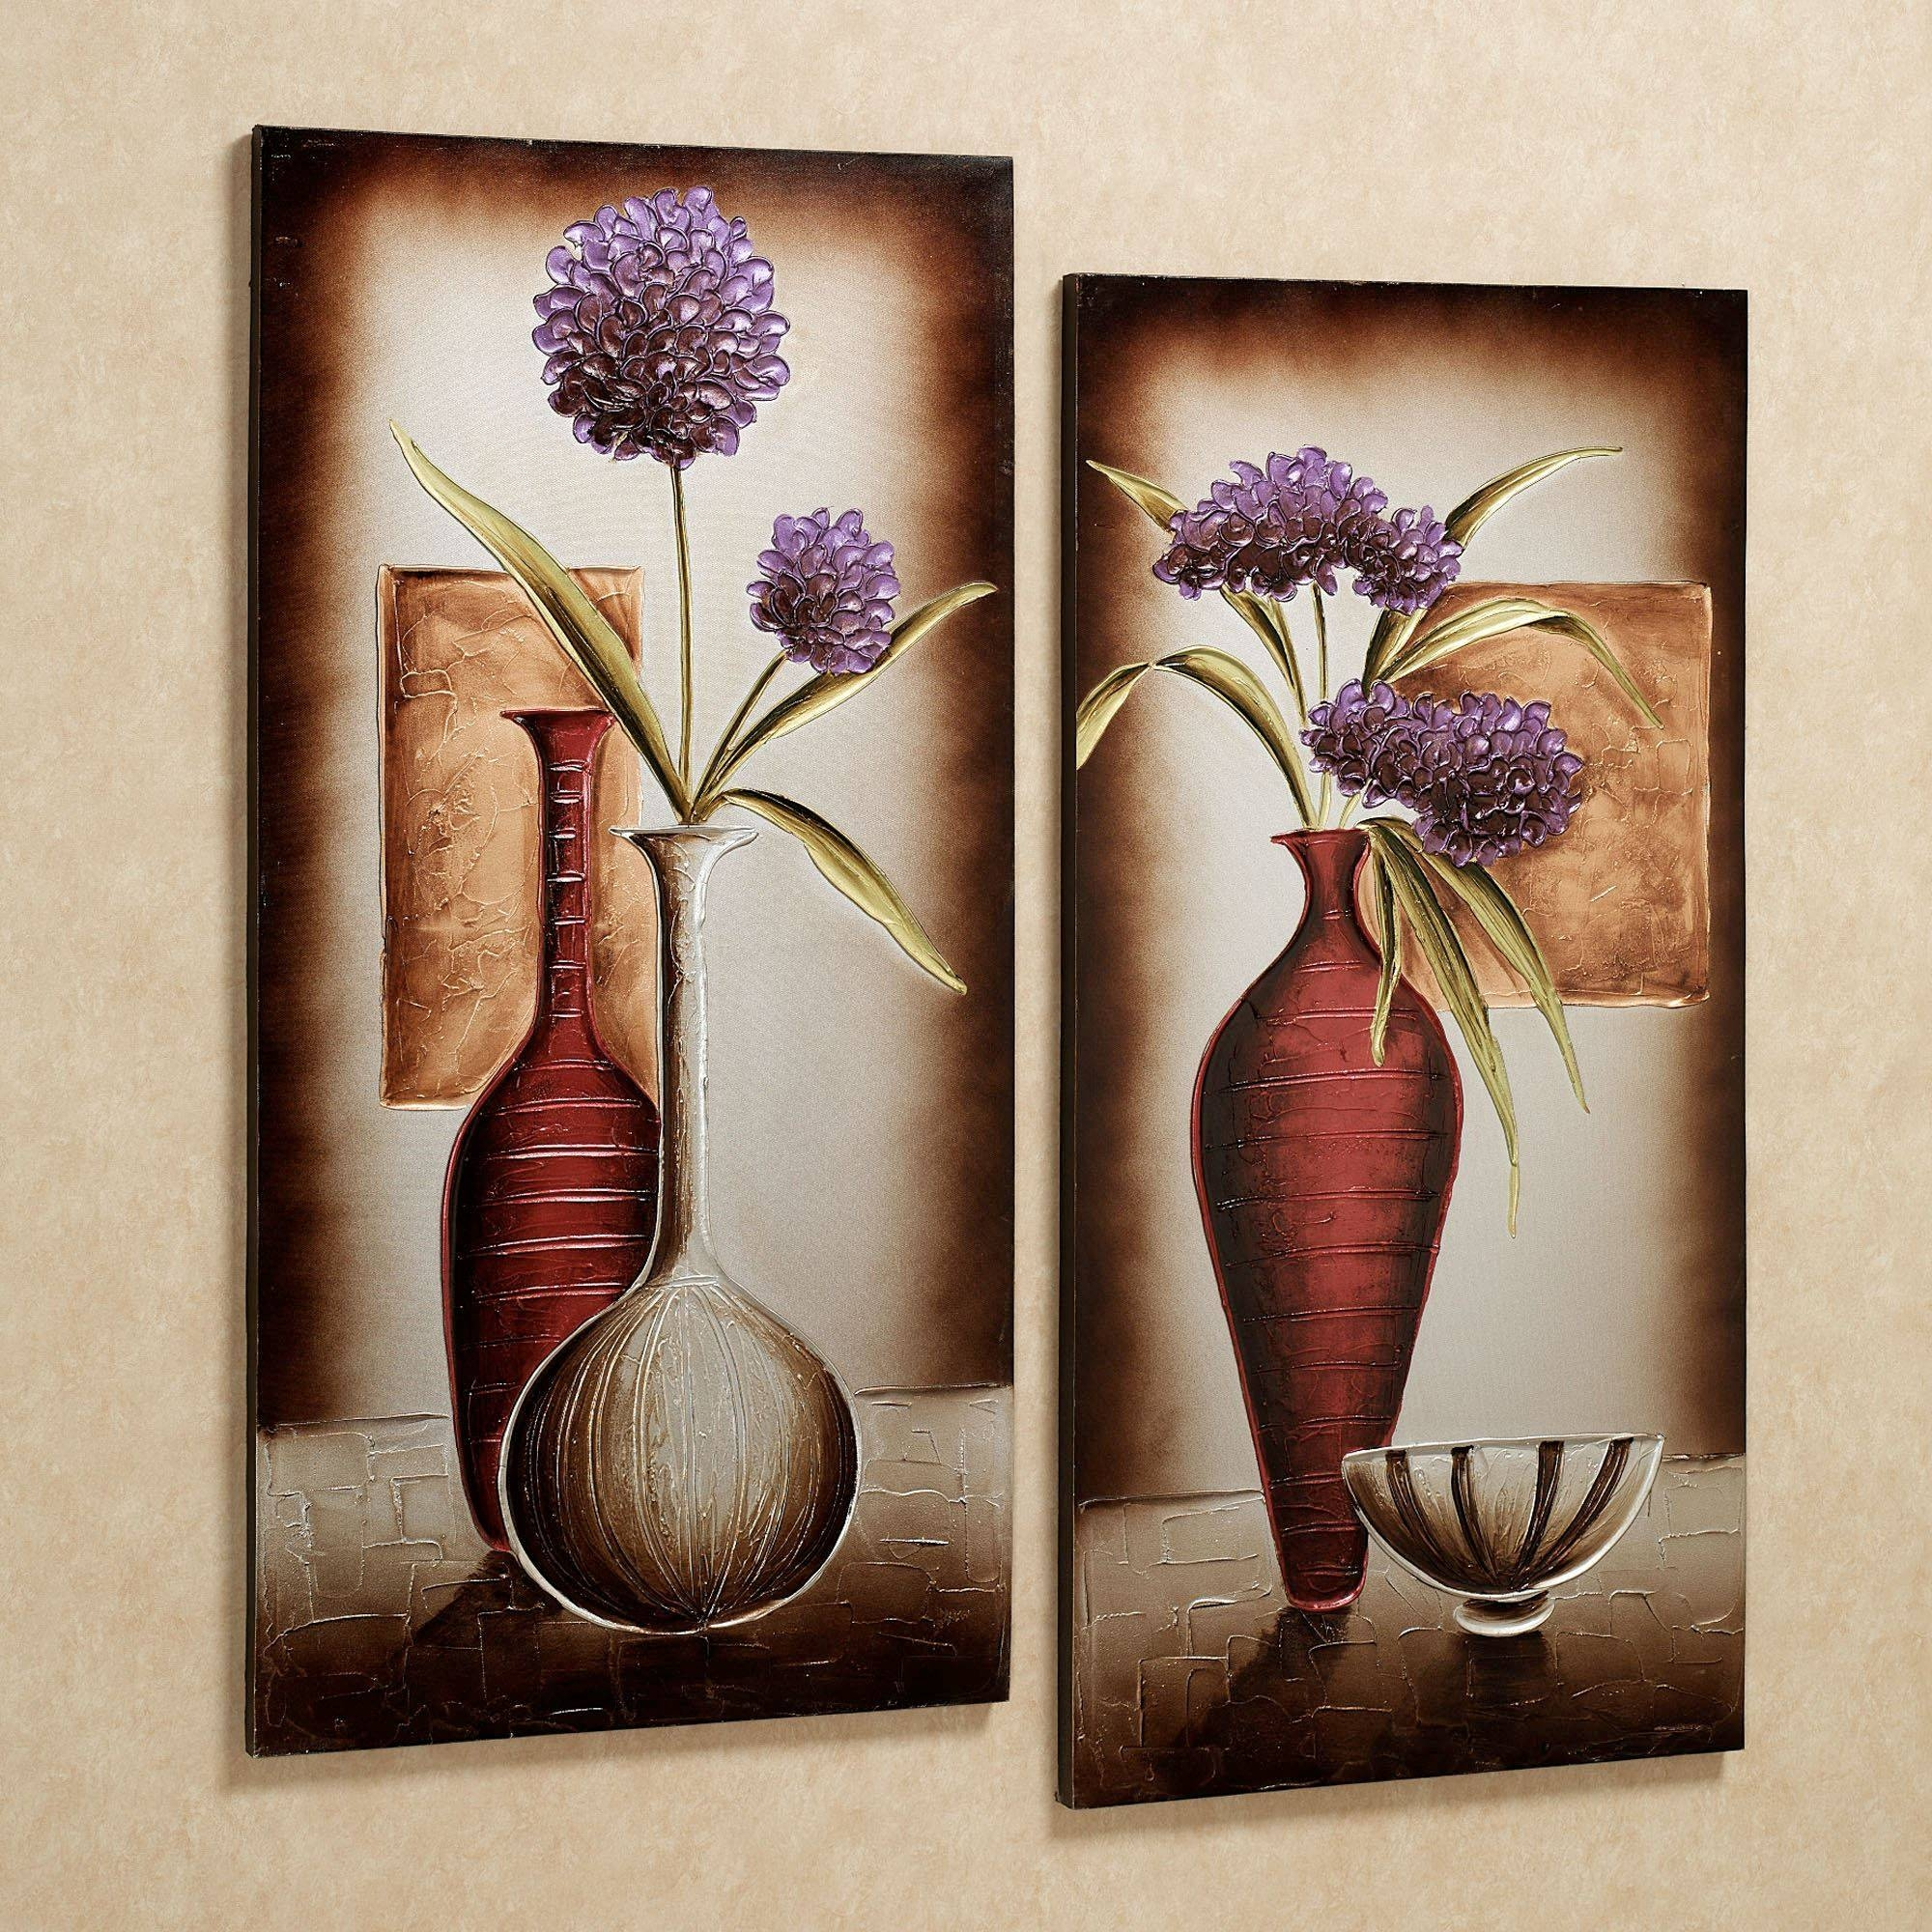 Floral Tranquility Canvas Wall Art Set Pertaining To Best And Newest Floral Wall Art Canvas (View 7 of 20)